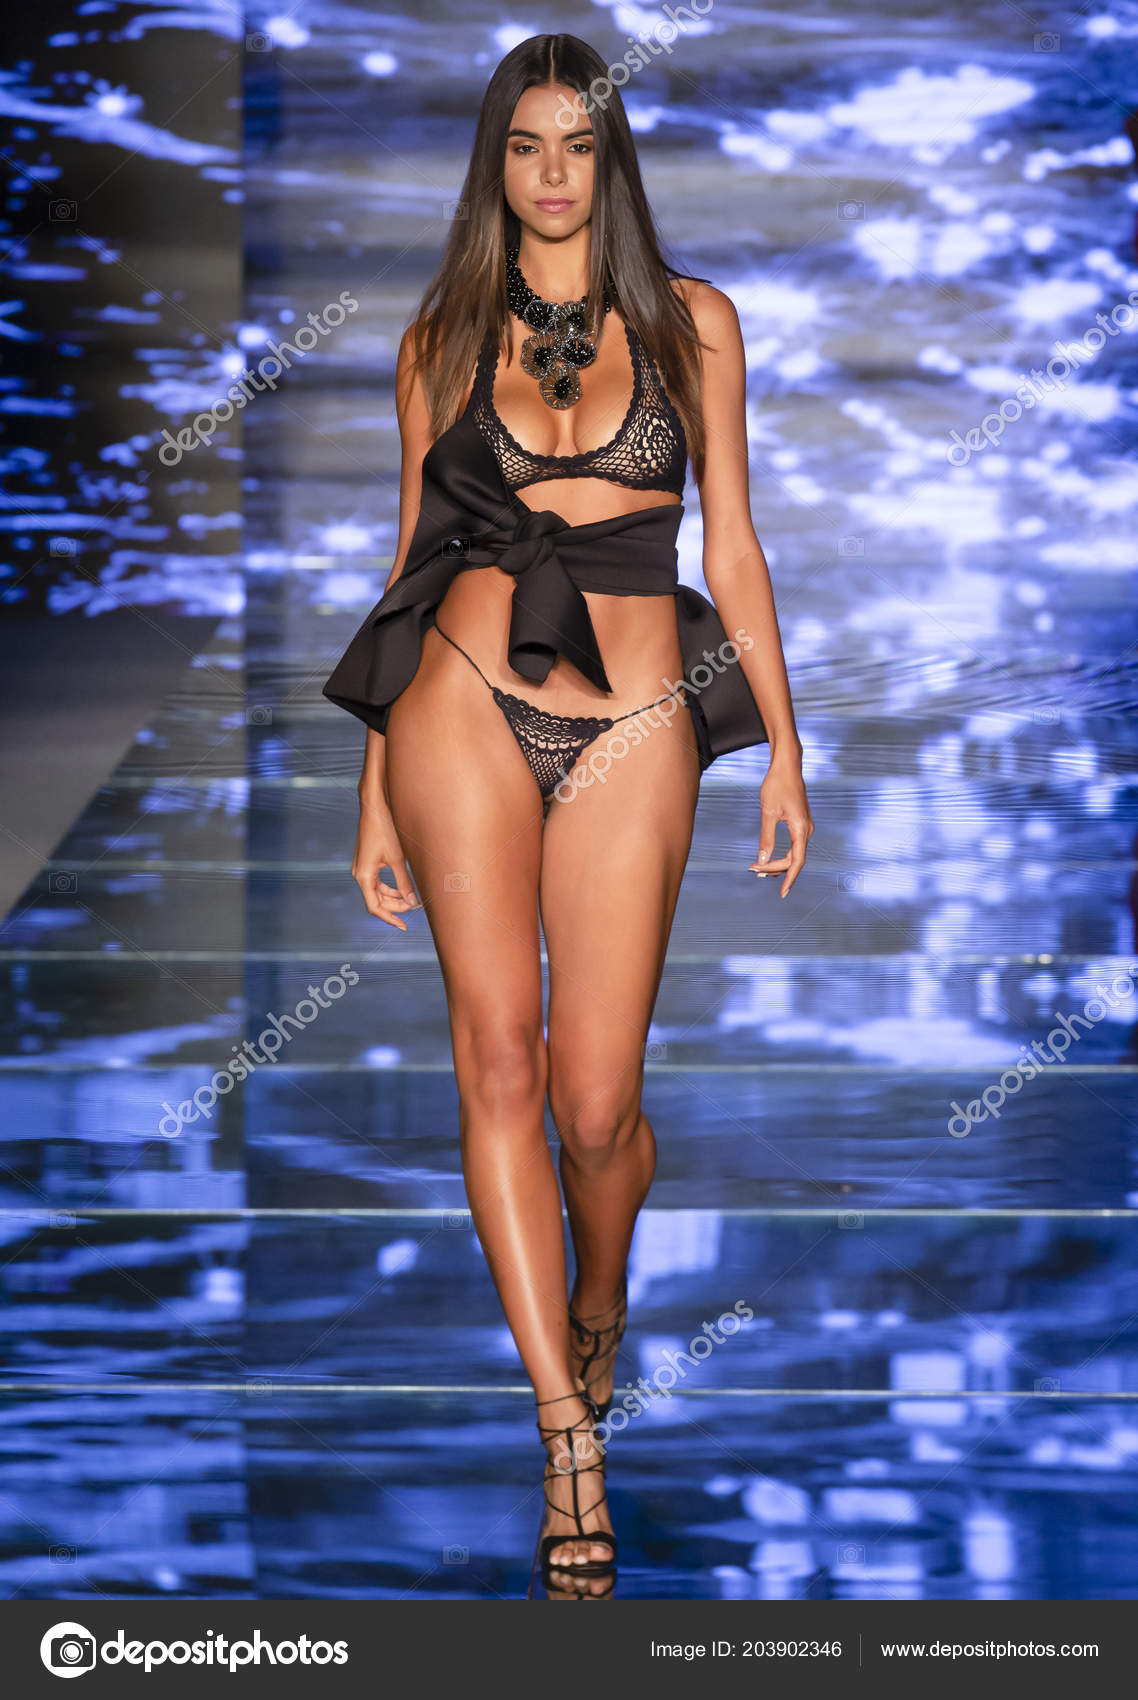 8477dce207c62 Miami Beach July 2018 Model Walks Runway Baes Bikinis Collection — Stock  Photo